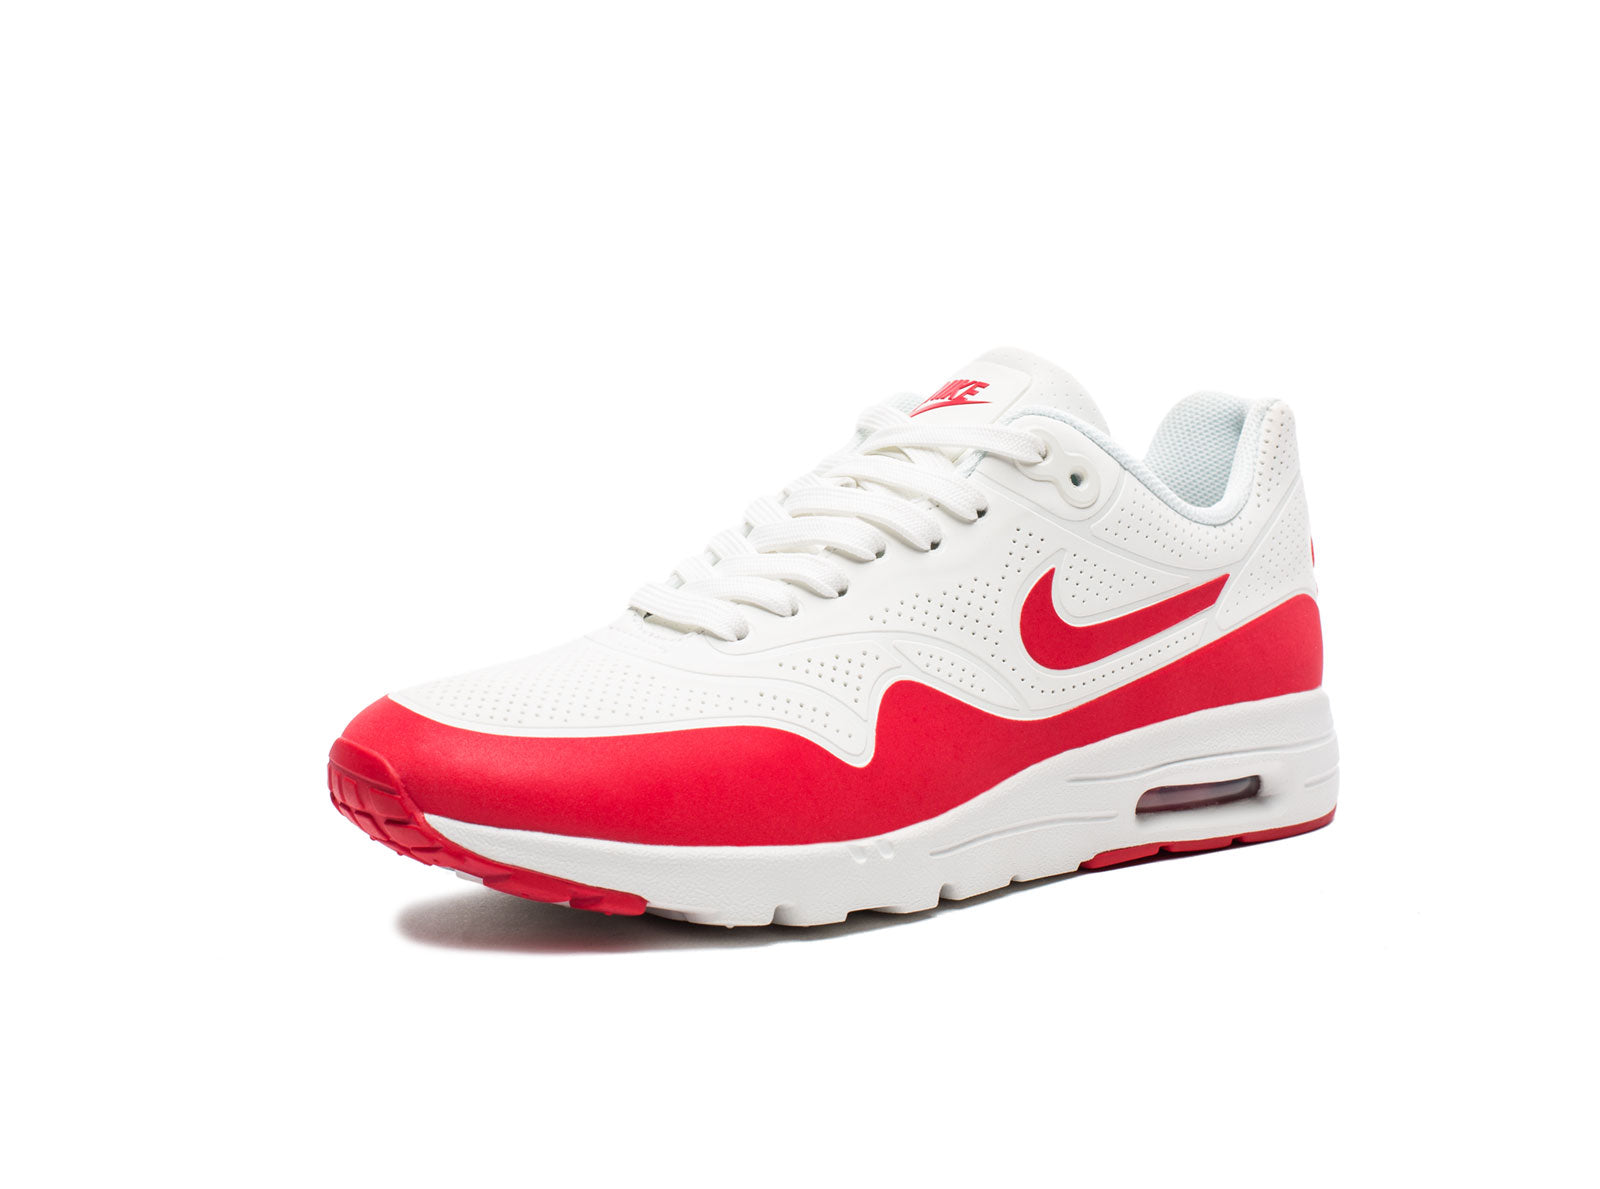 factory price 02ad7 65a80 WOMEN S AIR MAX 1 ULTRA MOIRE -SUMMIT WHITE WHITE UNIVERSITY RED